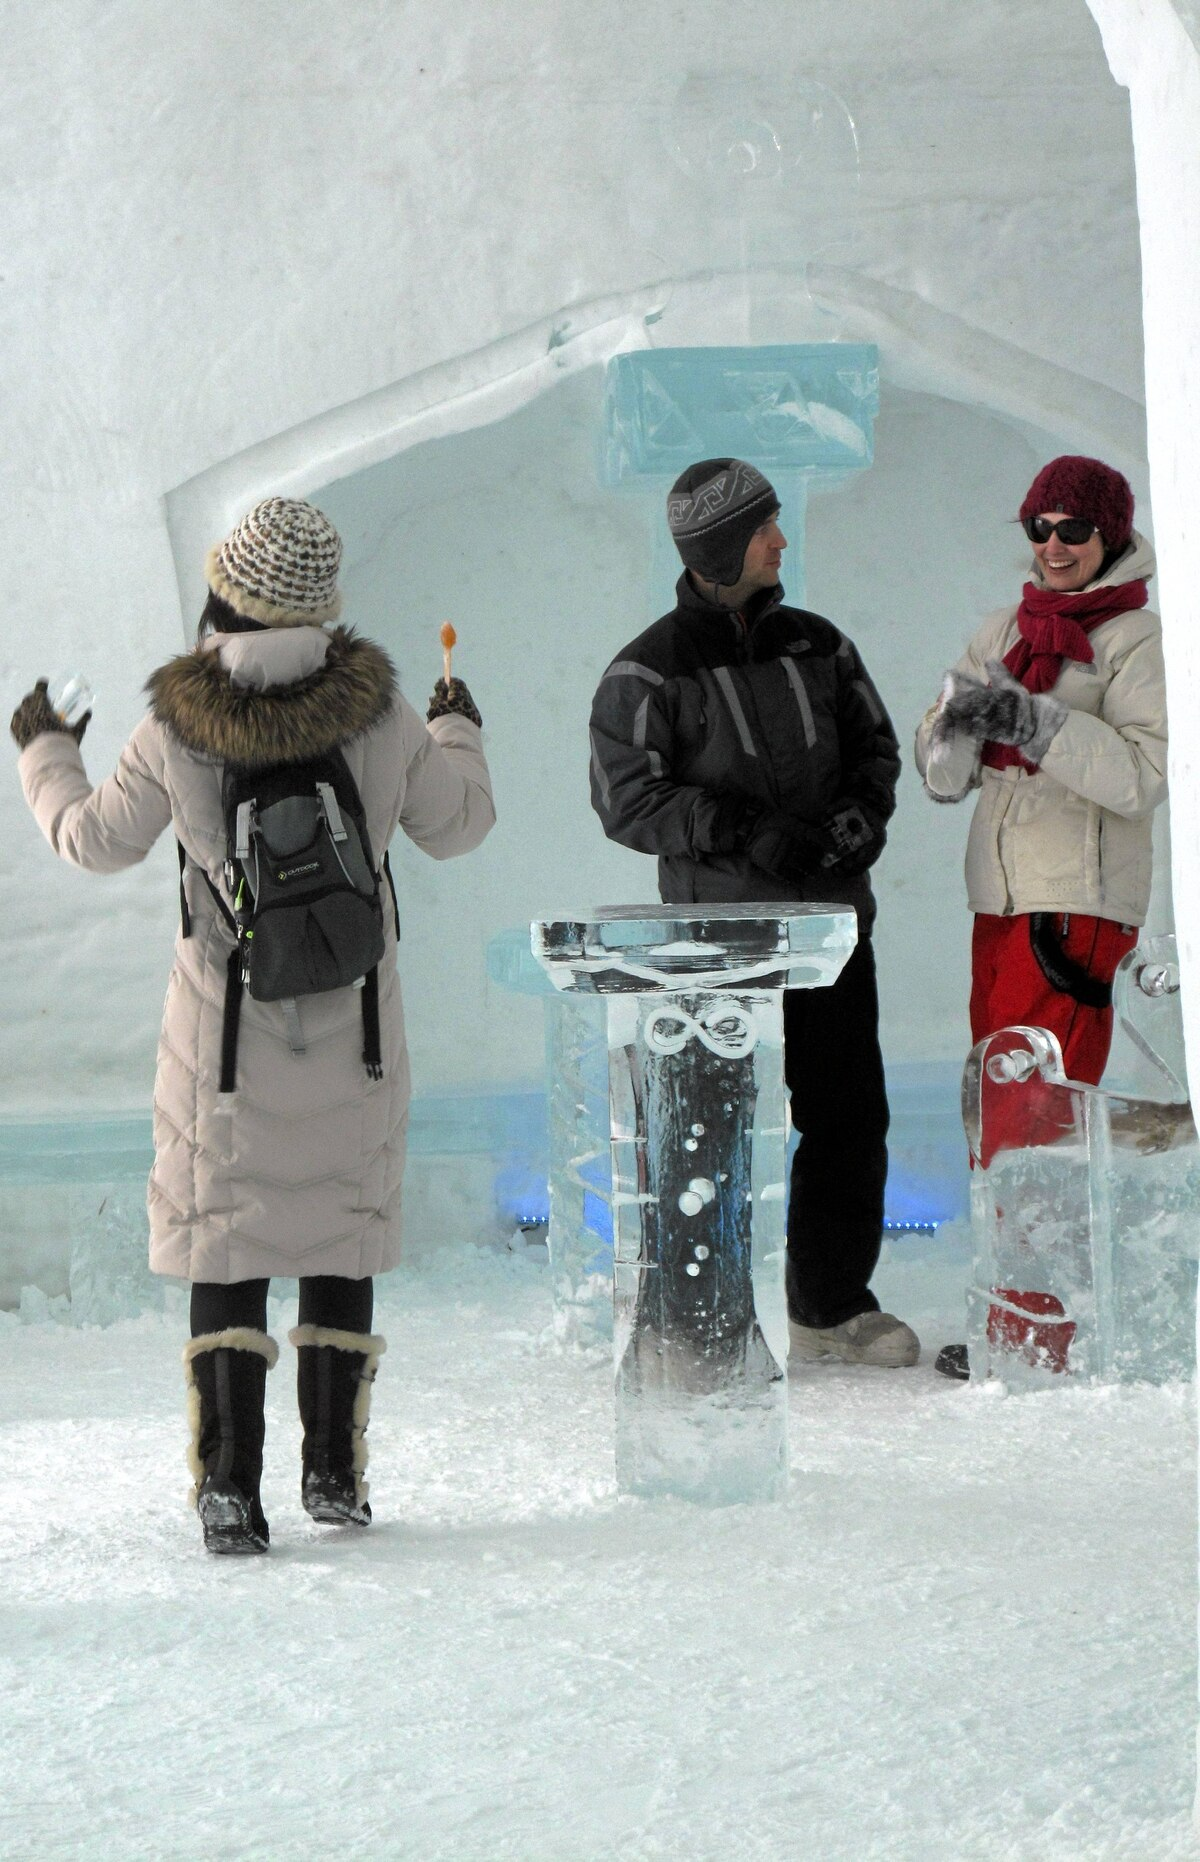 The music is thumping and few can resist the urge to move to the beat in the ice hotel bar.